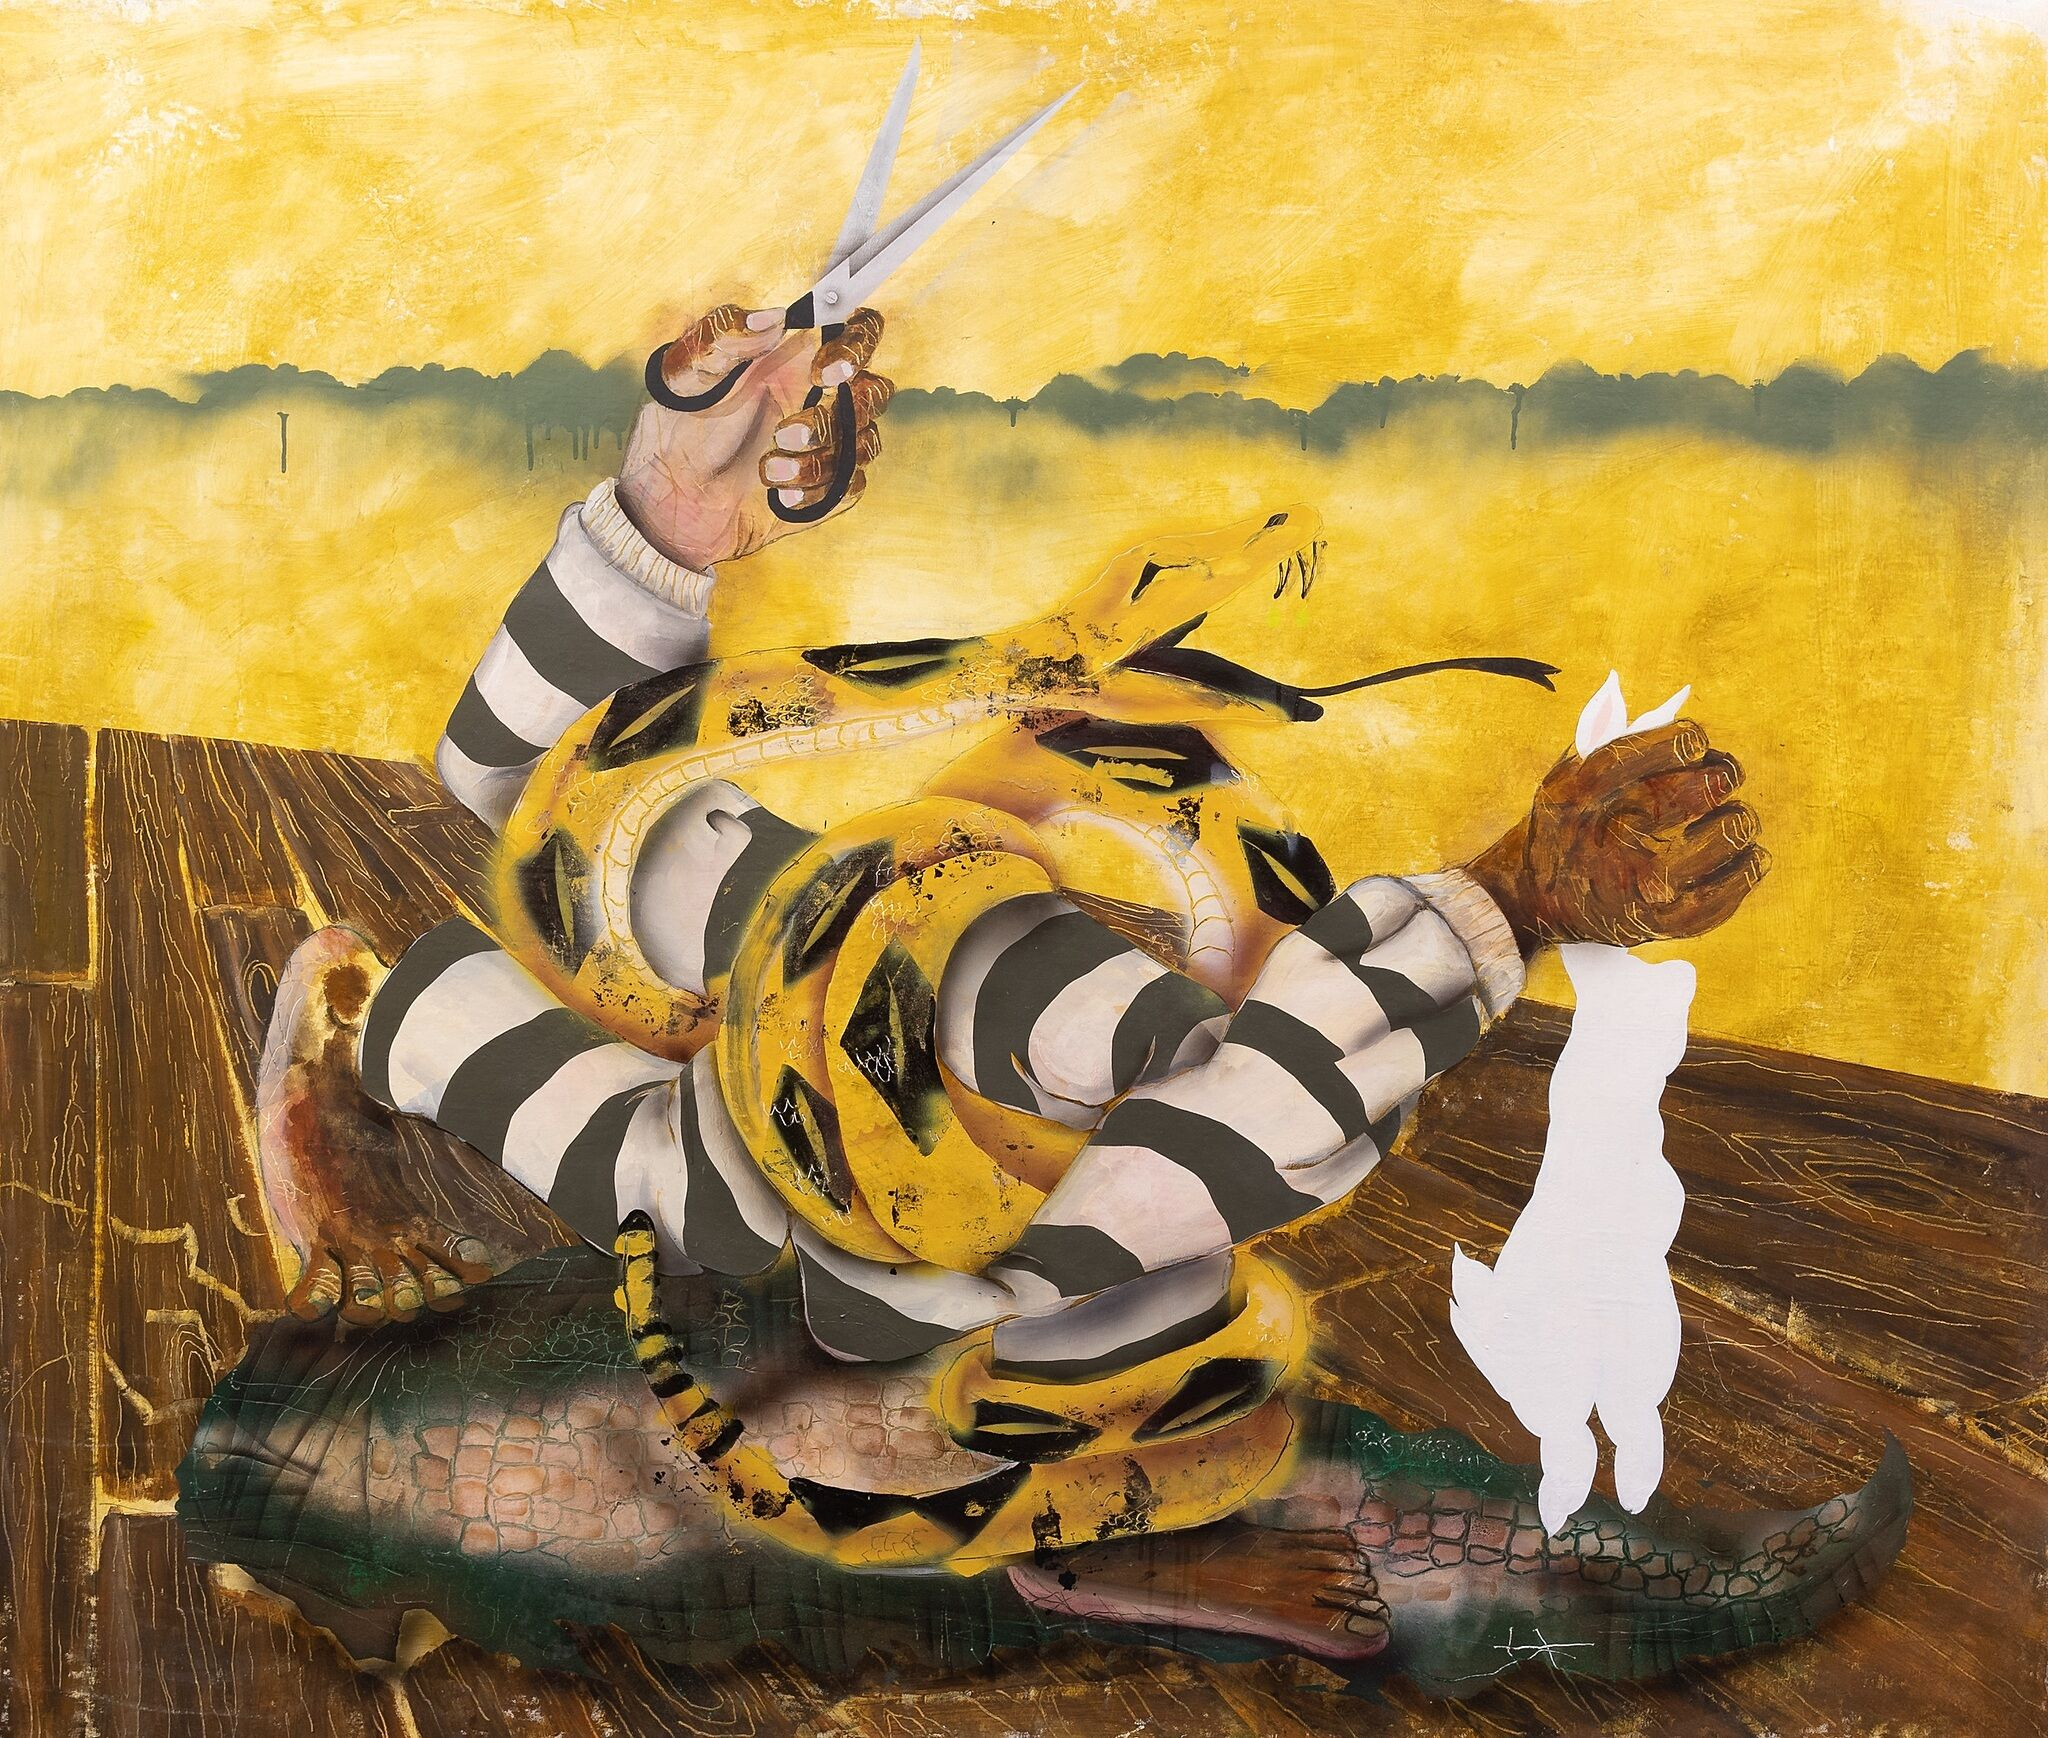 A painting of abstracted arms and hands wearing striped clothing.